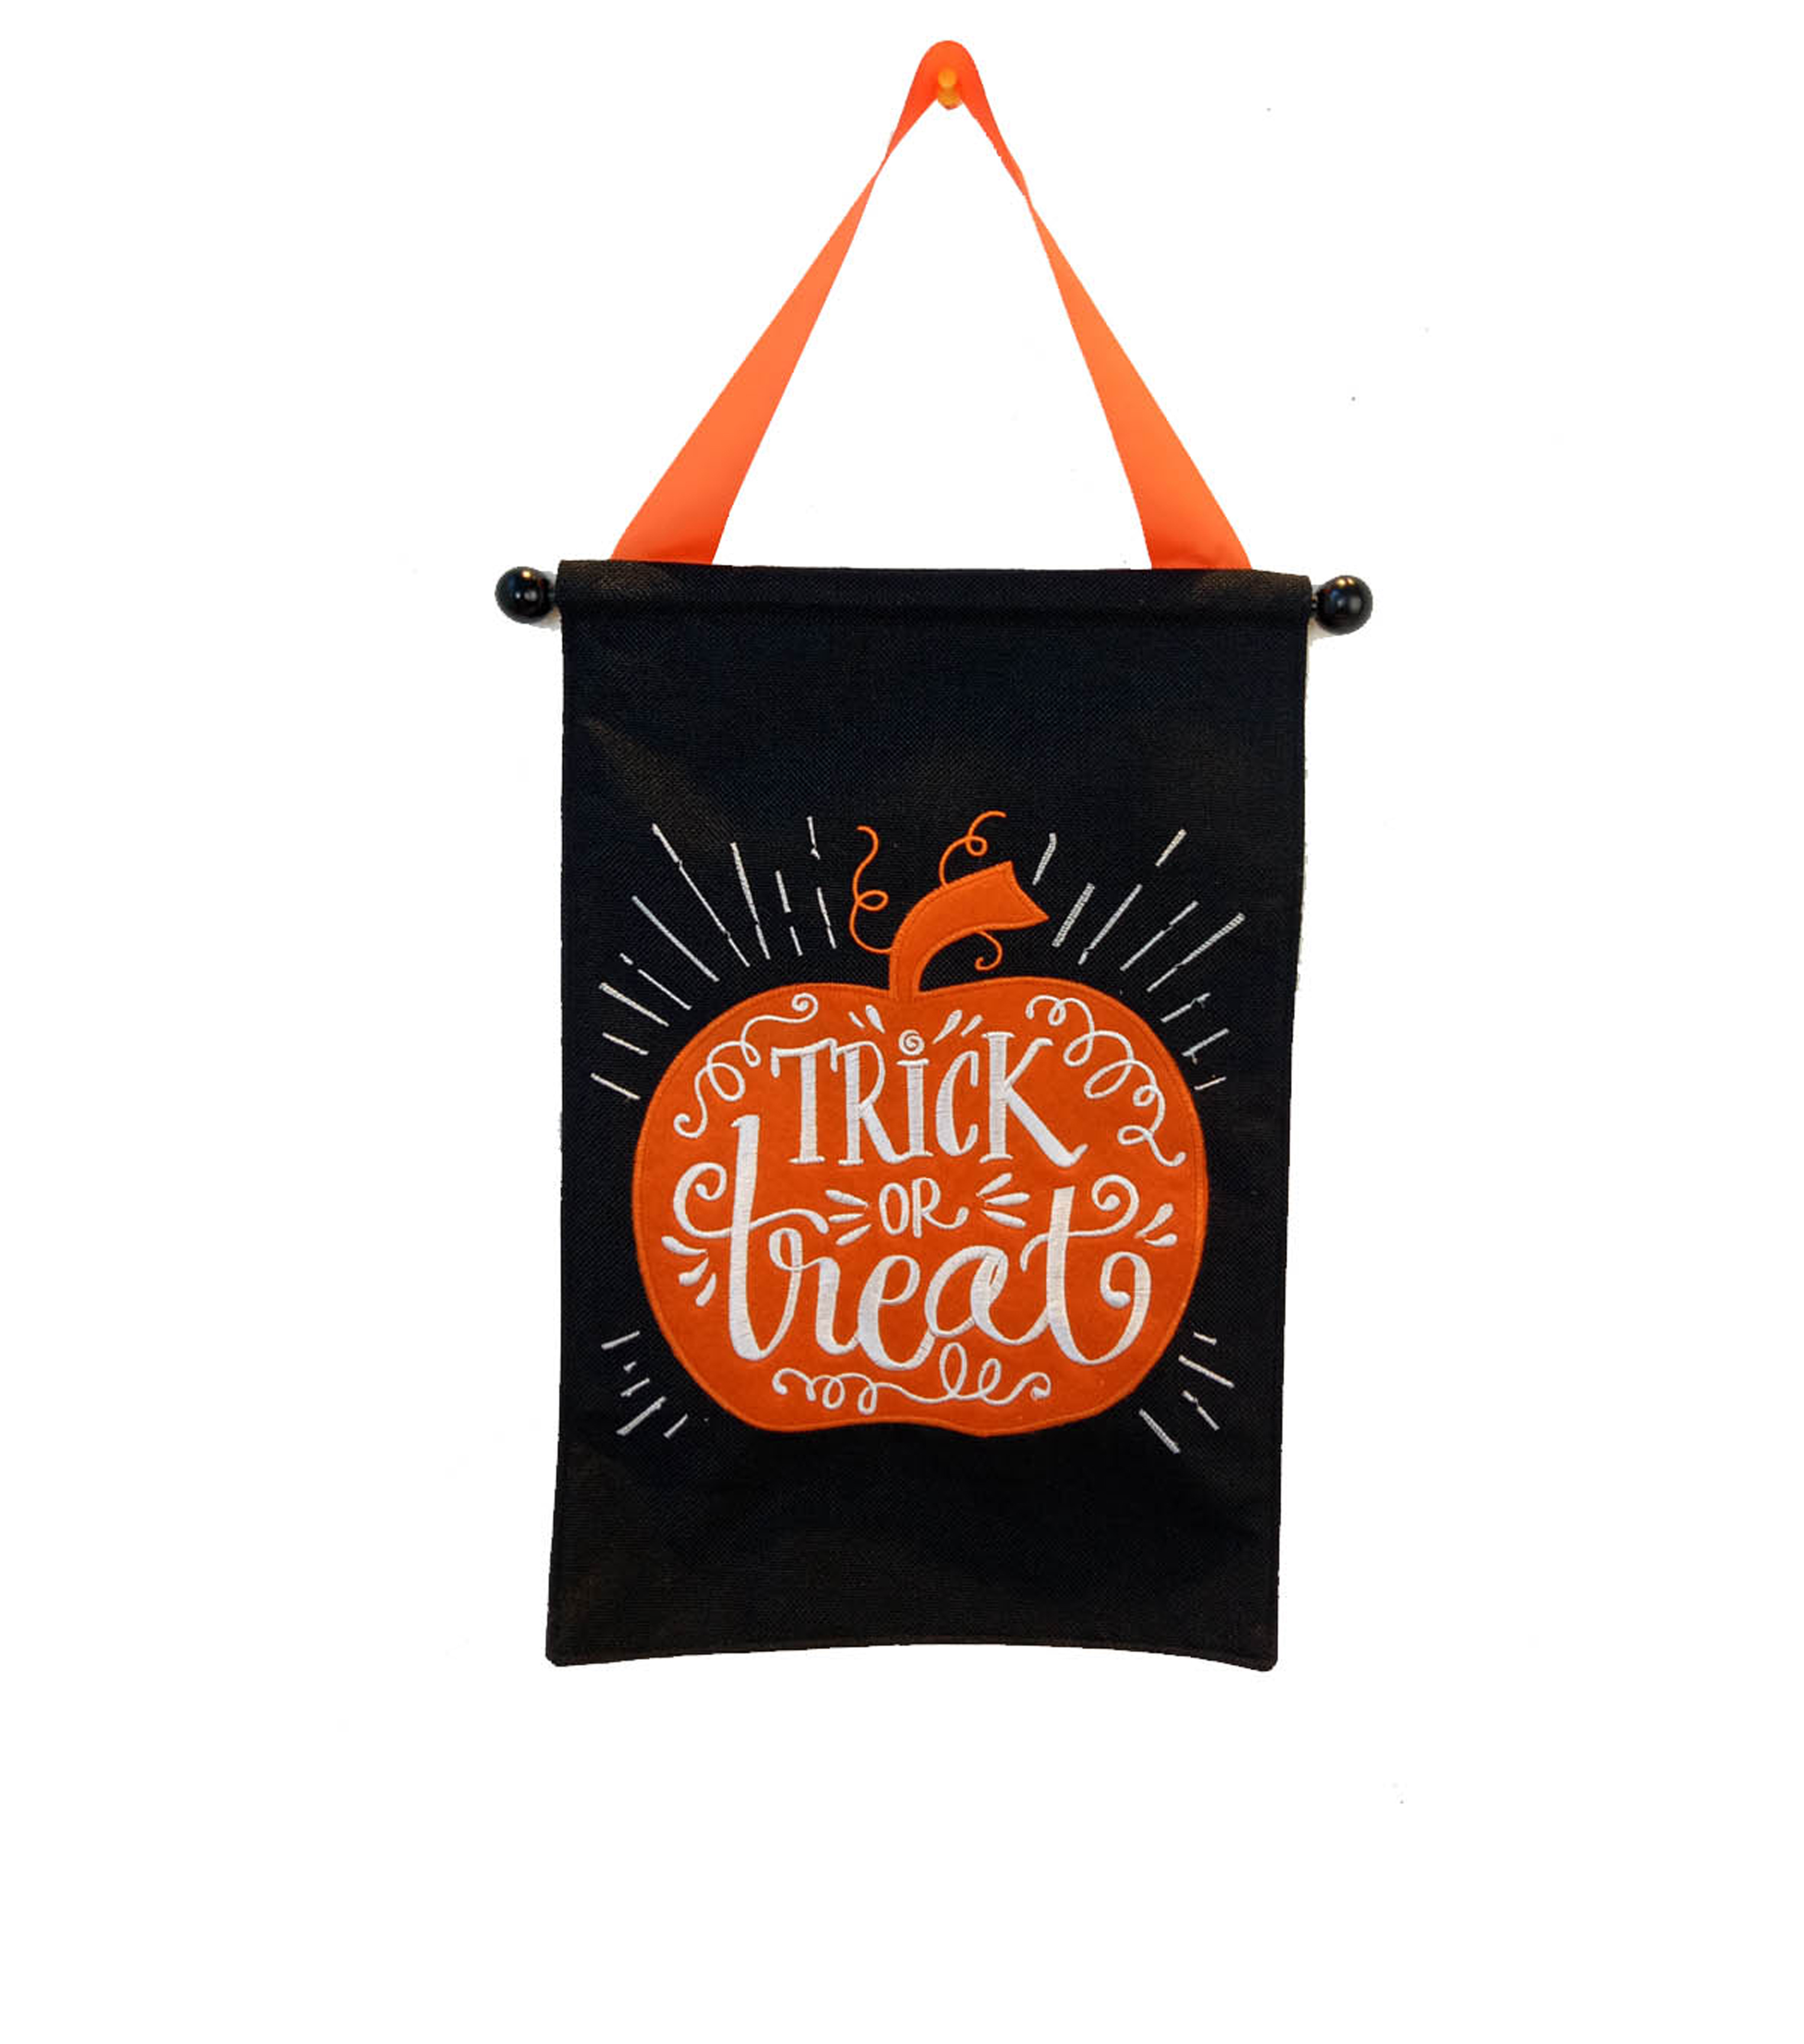 Maker\u0027s Halloween Wall Banner-Trick or Treat